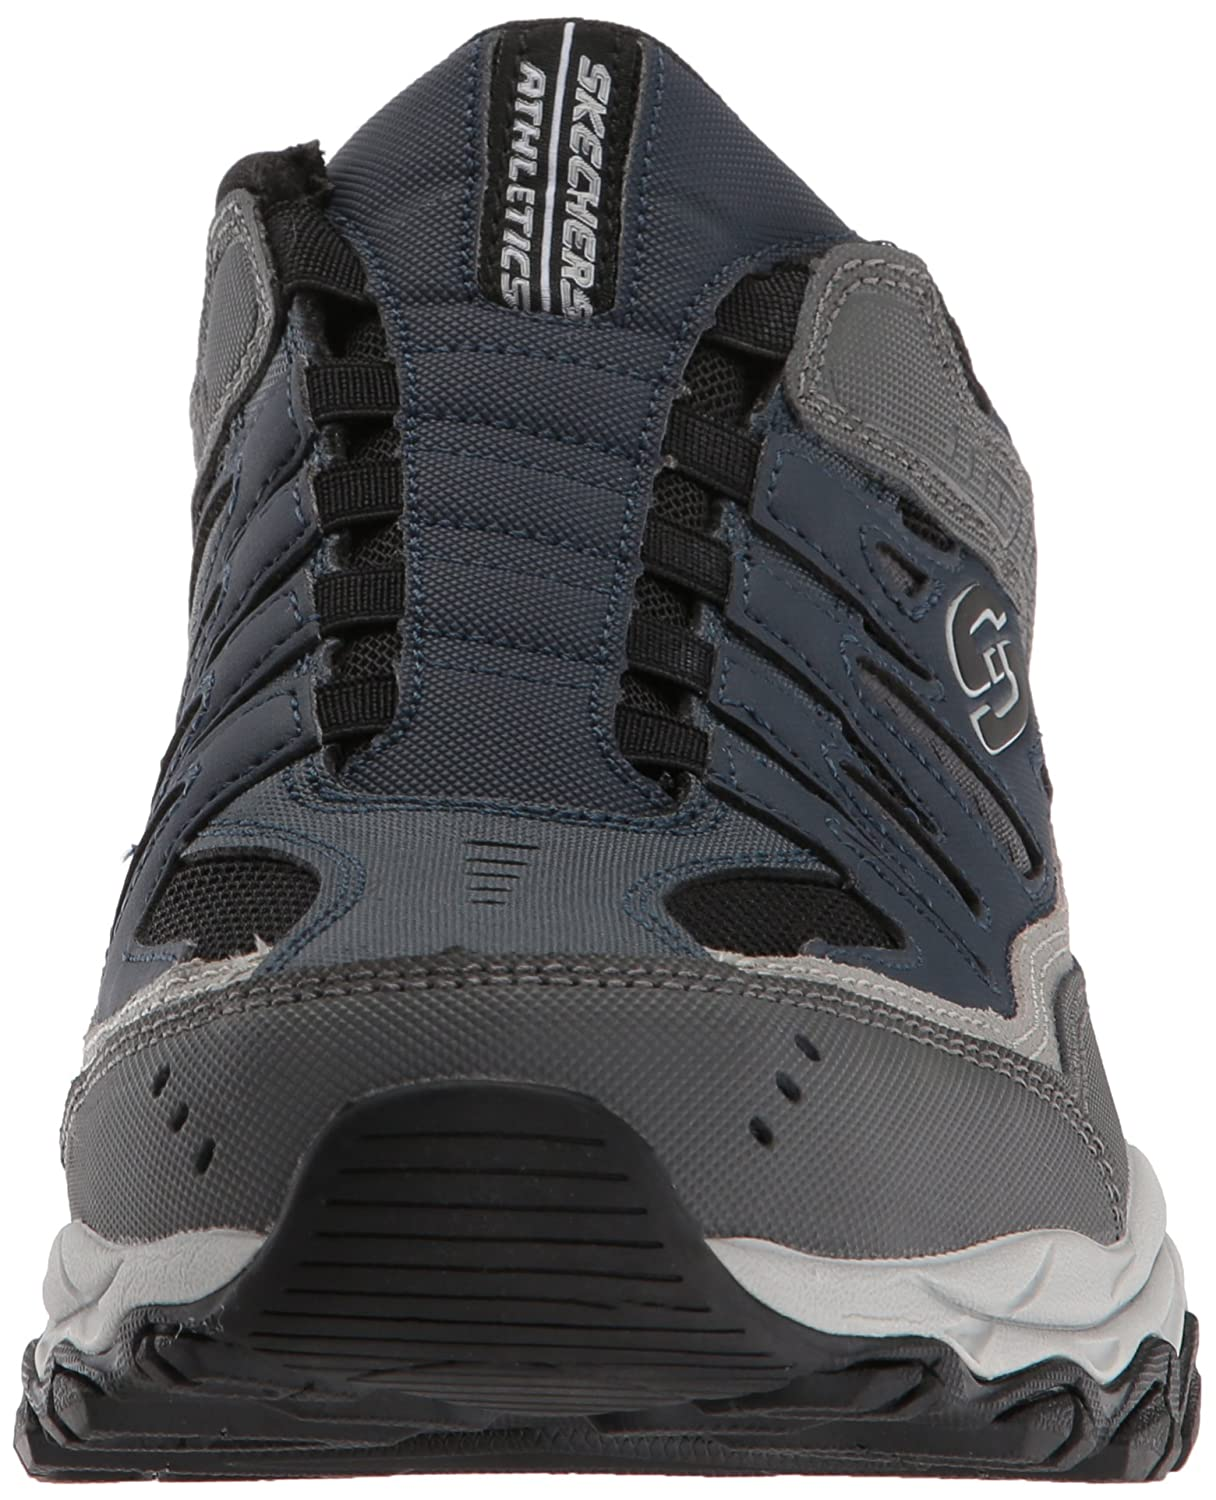 Skechers-Afterburn-Memory-Foam-M-Fit-Men-039-s-Sport-After-Burn-Sneakers-Shoes thumbnail 65